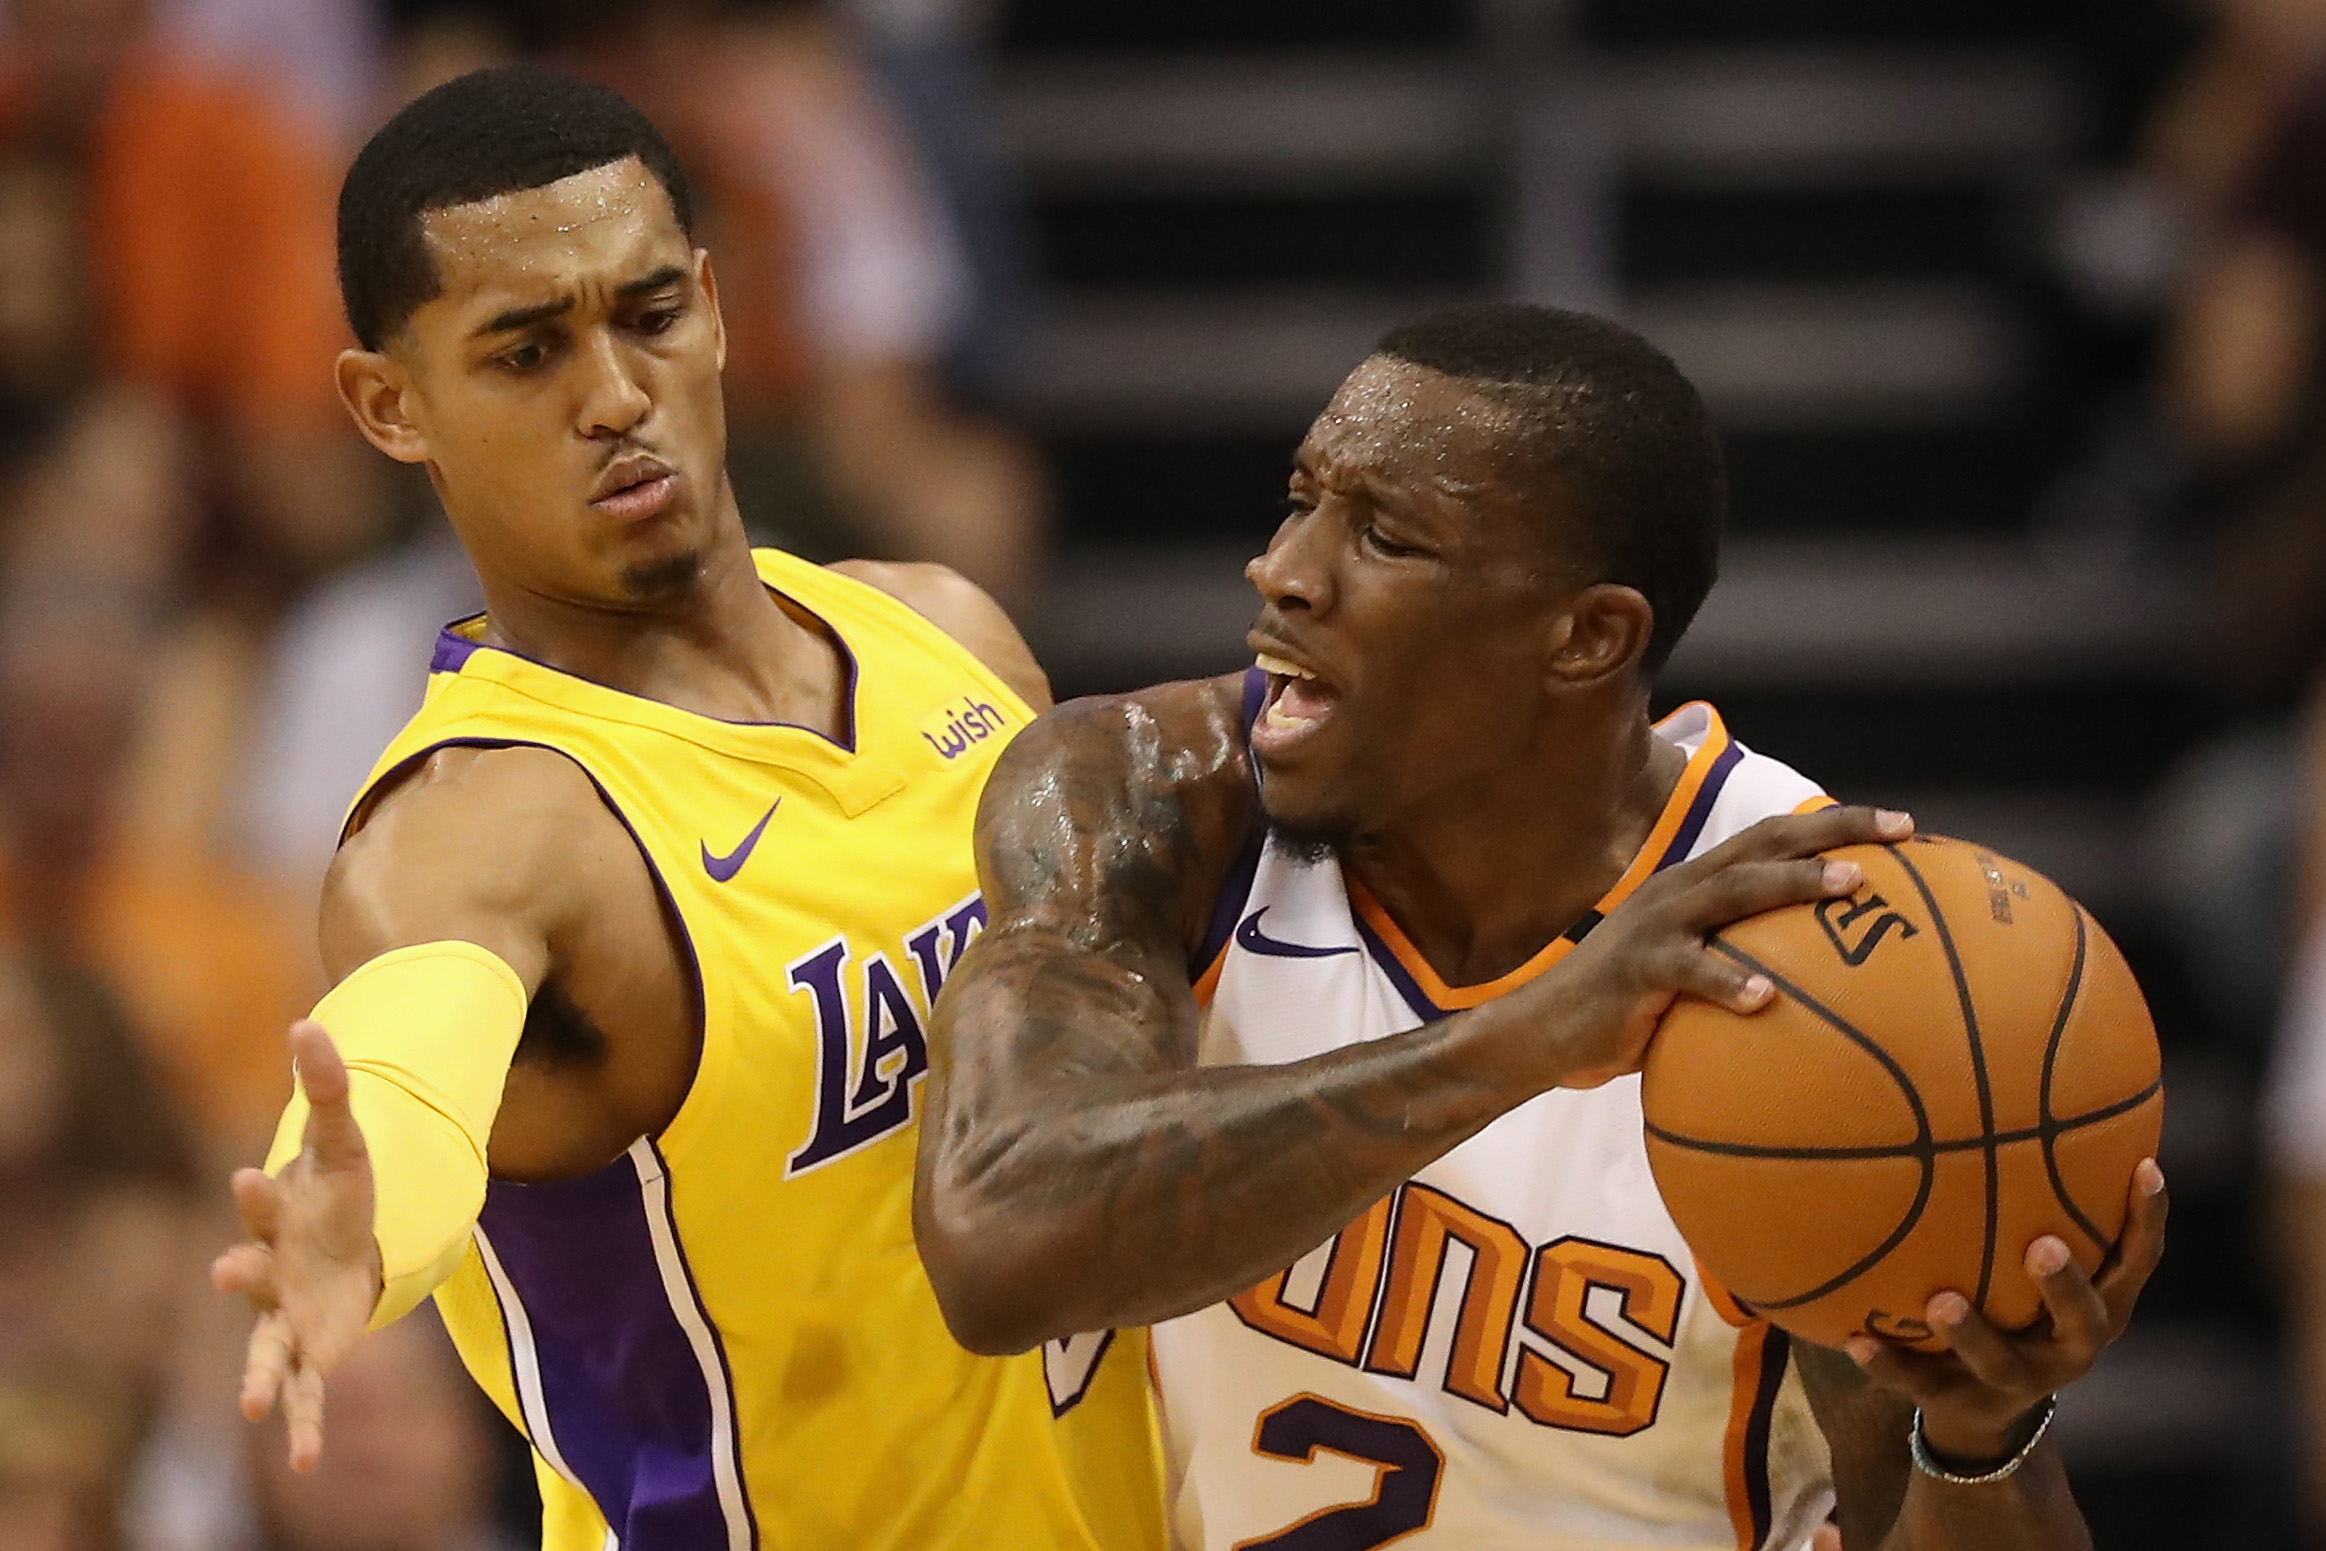 Eric Bledsoe Fined $10K for 'I Don't Wanna Be Here' Tweet